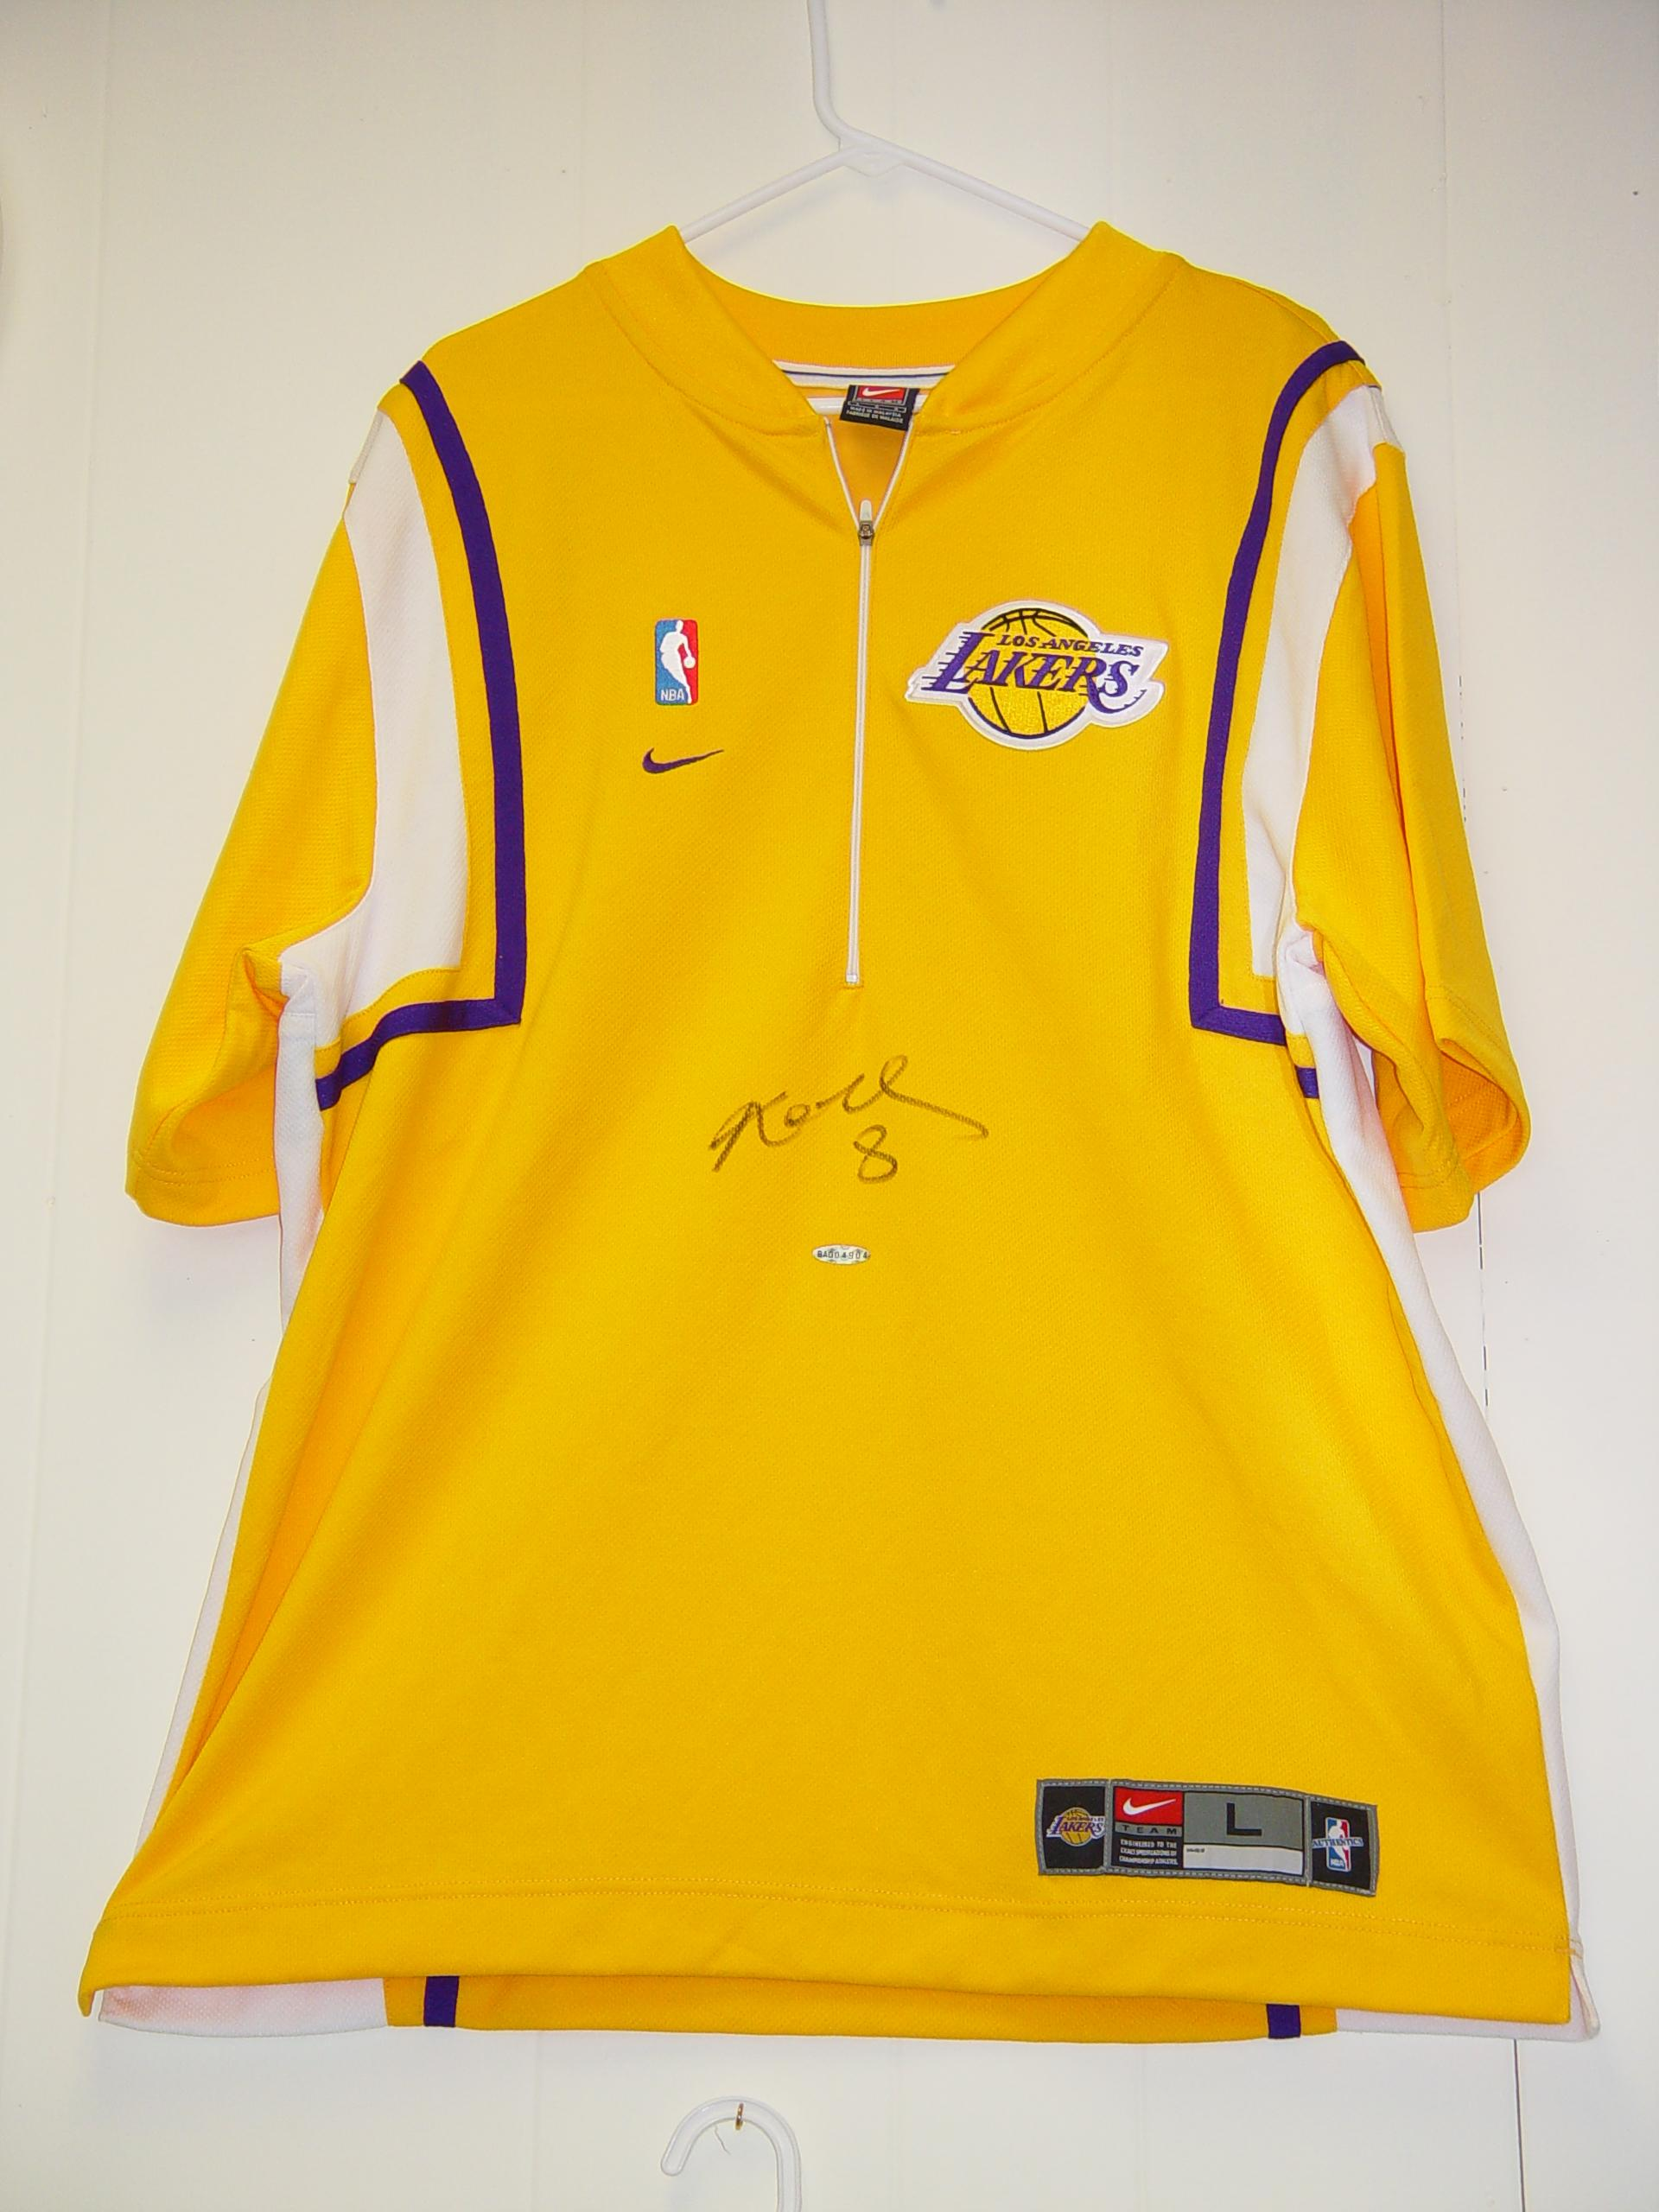 Kobe Bryant Autographed Nike Large Warm-up Jersey from Upper Deck Authenticated!  A Beautiful Piece Featuring a Bold Black Autograph From Kobe!